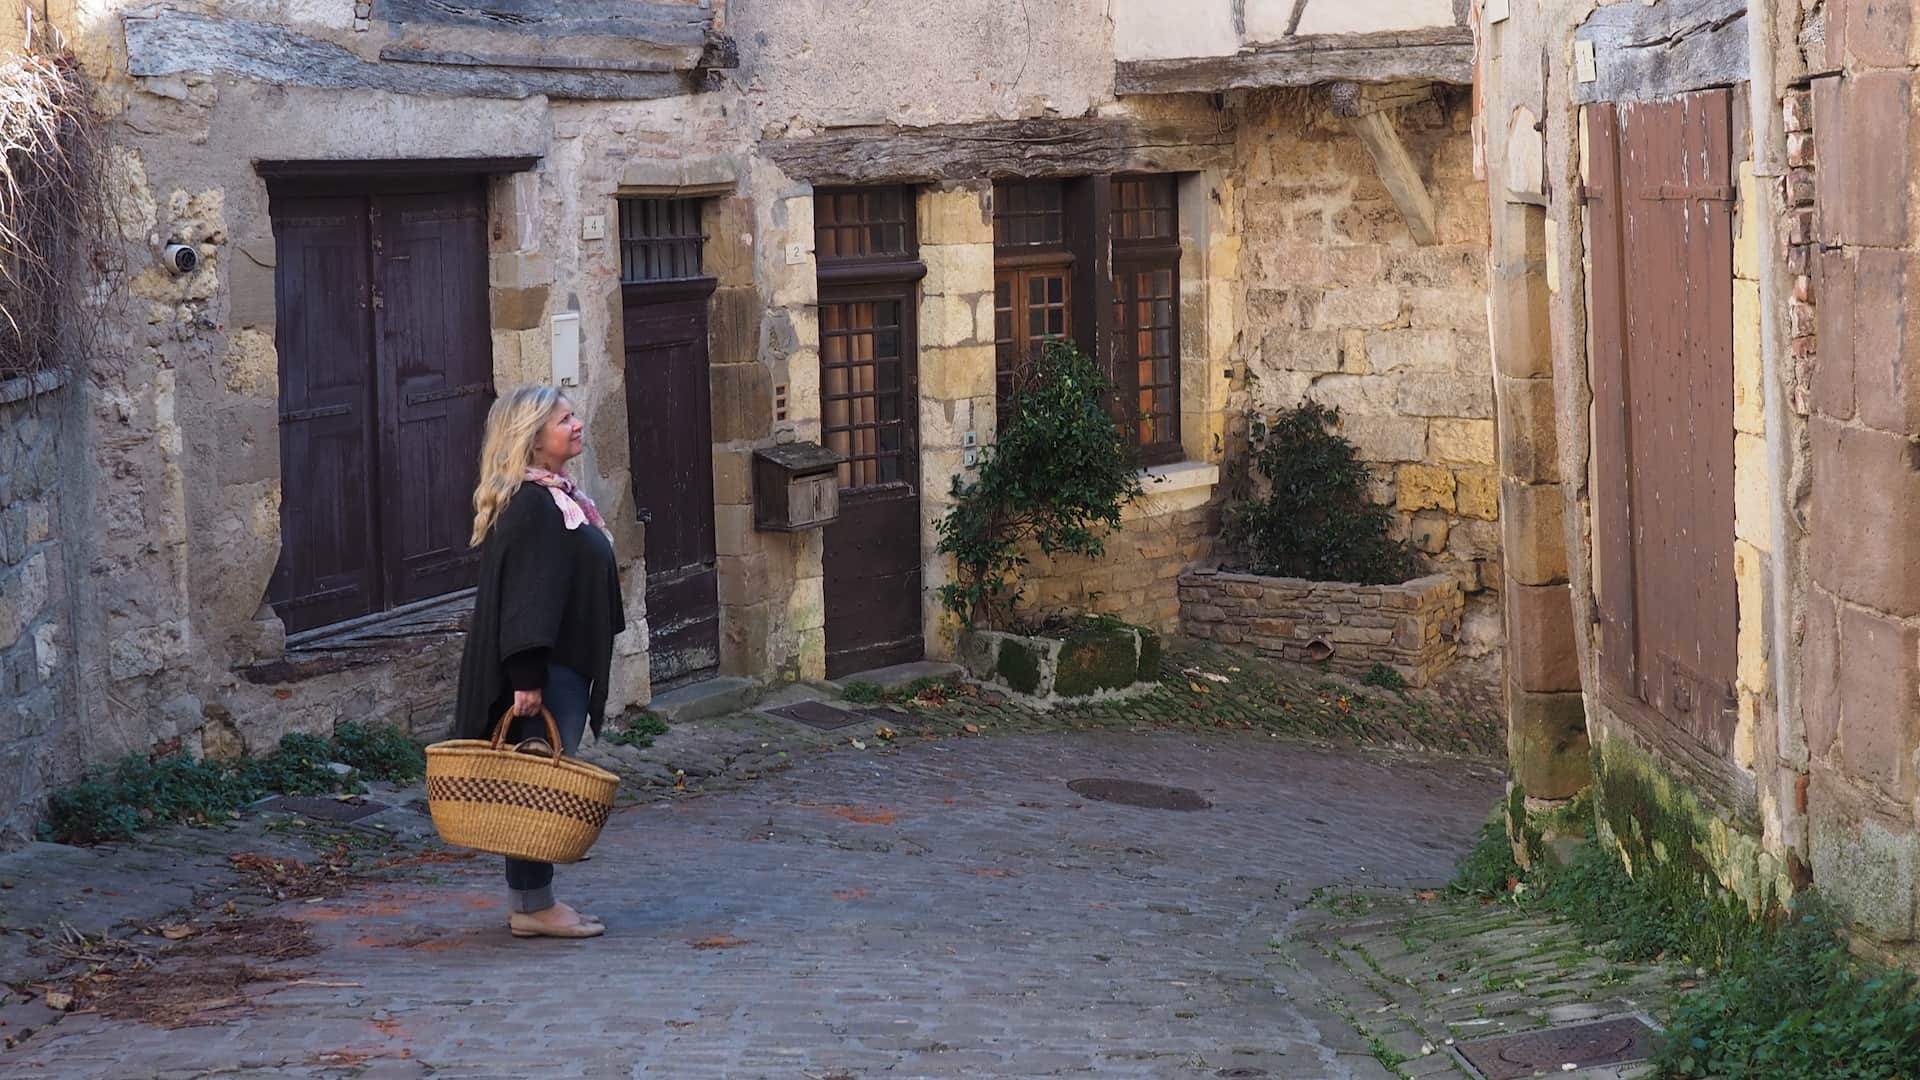 WHAT'S IT LIKE TO HOUSESIT IN RURAL FRANCE?